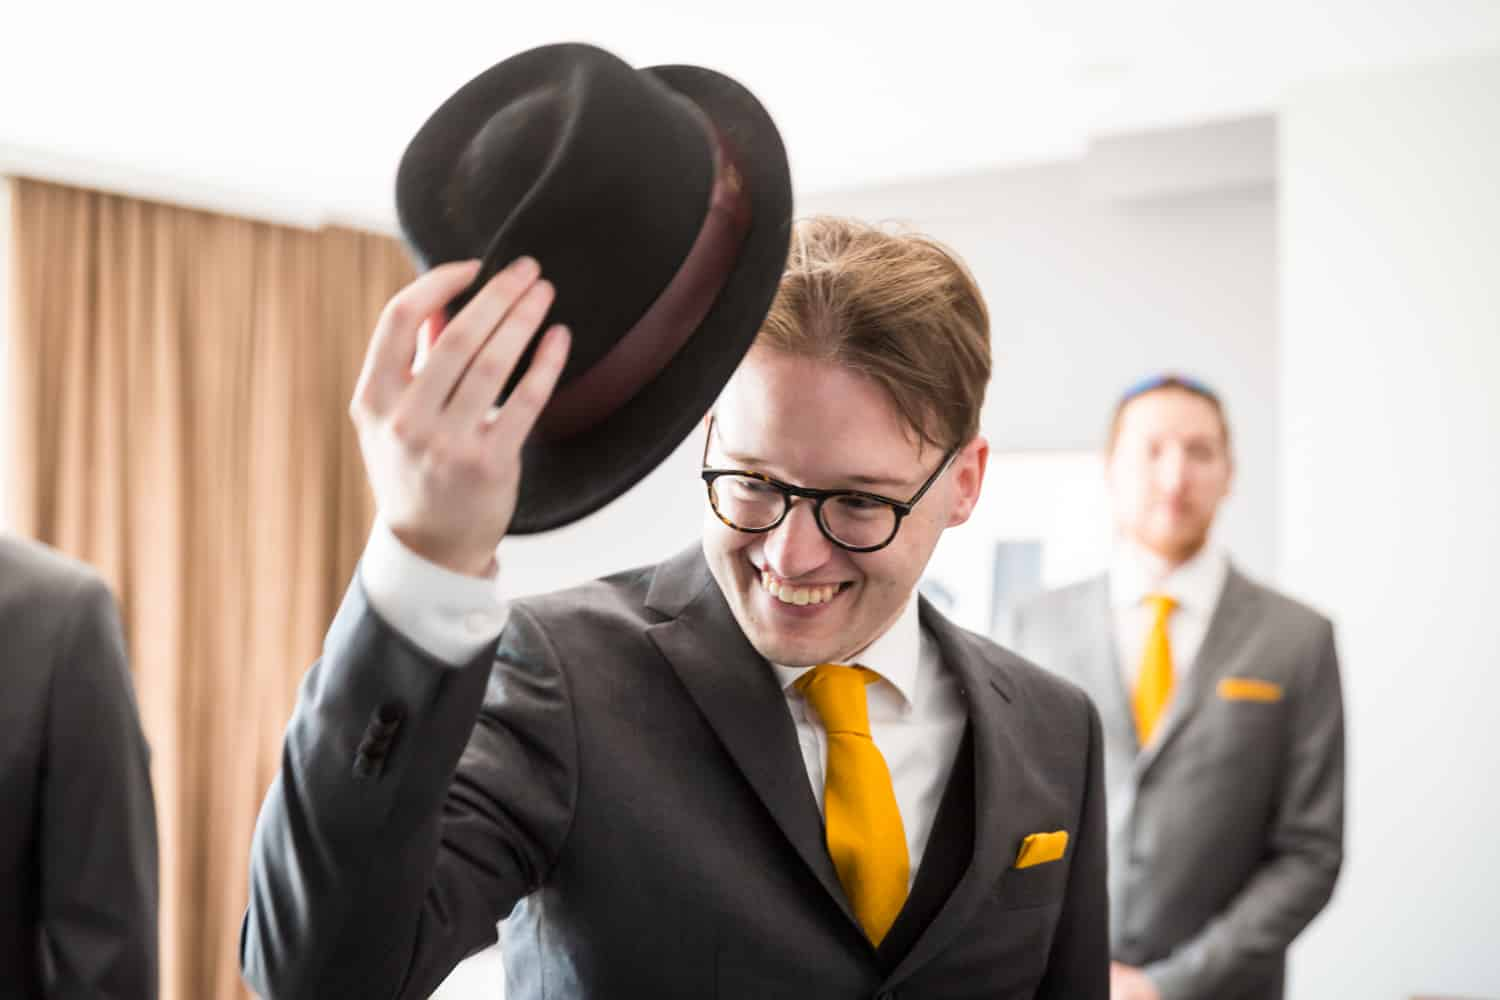 Groom pulling off hat in hotel room